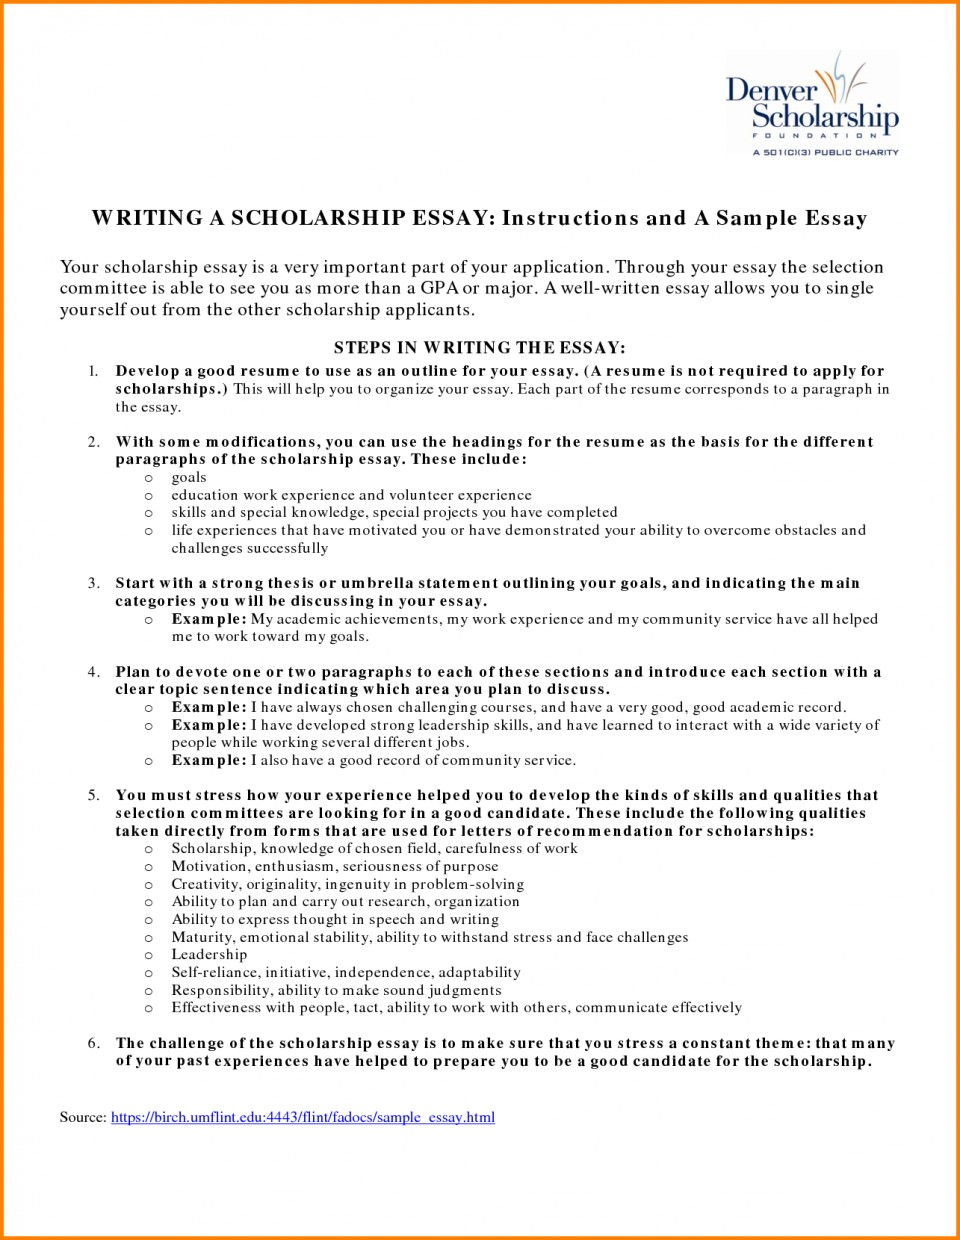 009 Essay Example Fair Resume Examples For Scholarships In Scholarship Sample Of Awful Essays About Yourself Why I Deserve 960